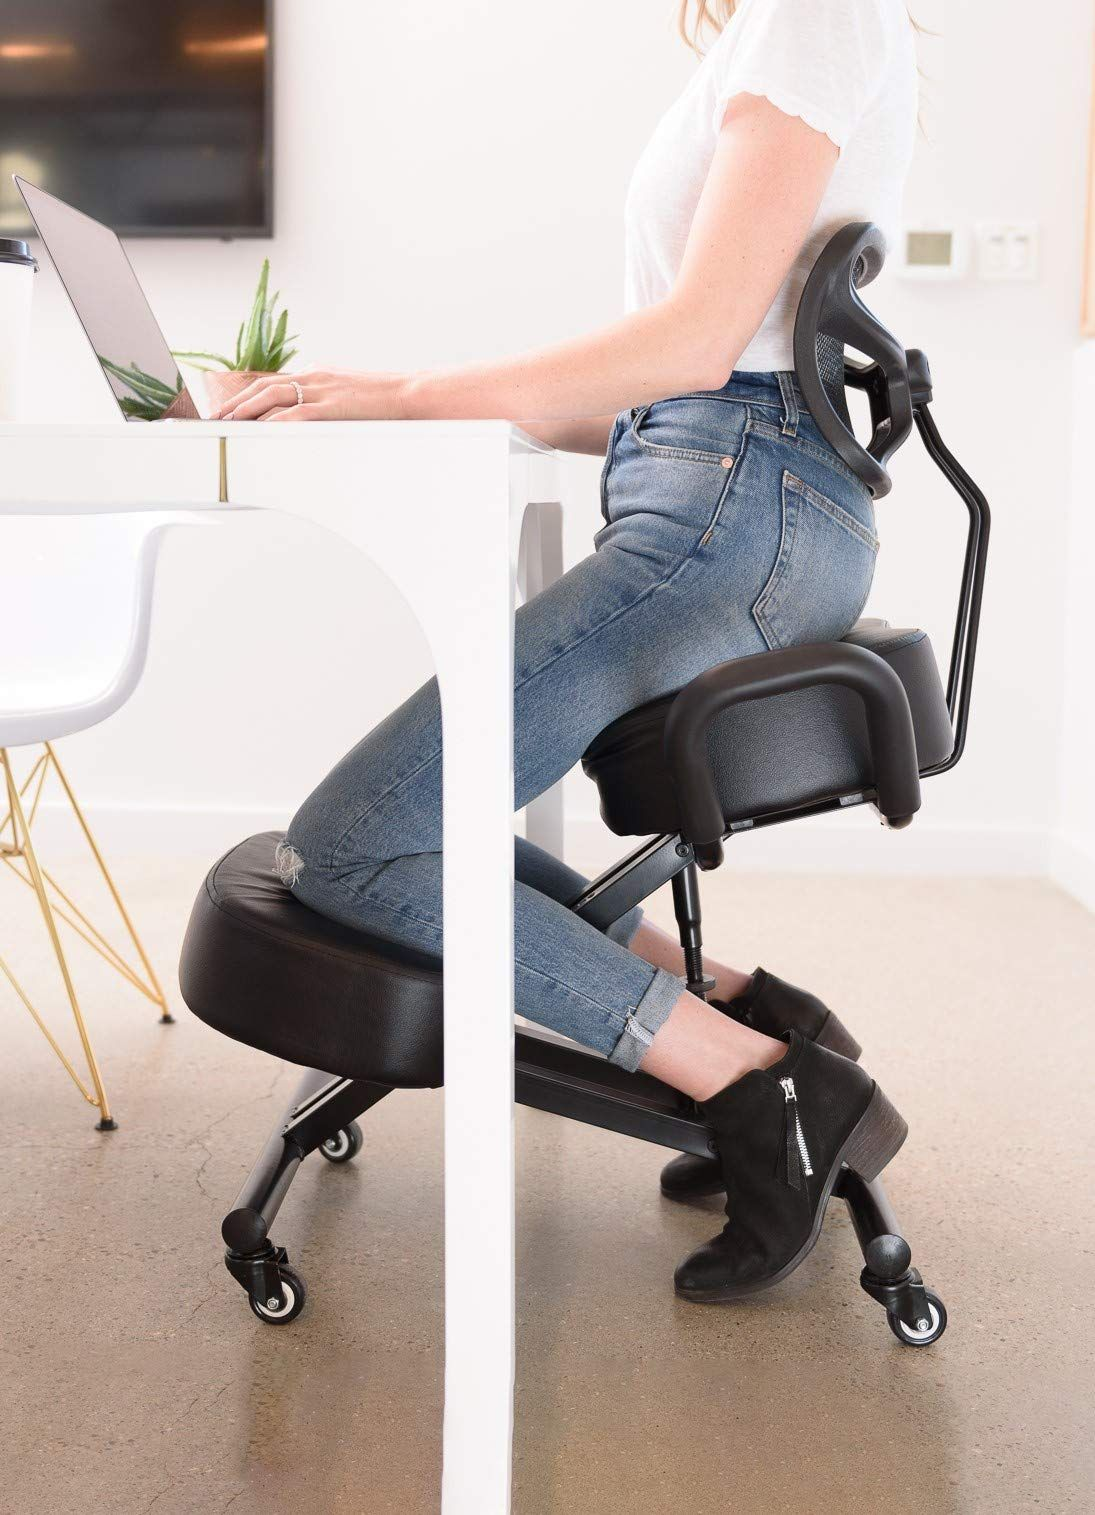 Sleekform Ergonomic Kneeling Chair Posture Correction Kneel Stool Orthopedic Spine Support For Back Ergonomic Kneeling Chair Kneeling Chair Ergonomic Chair